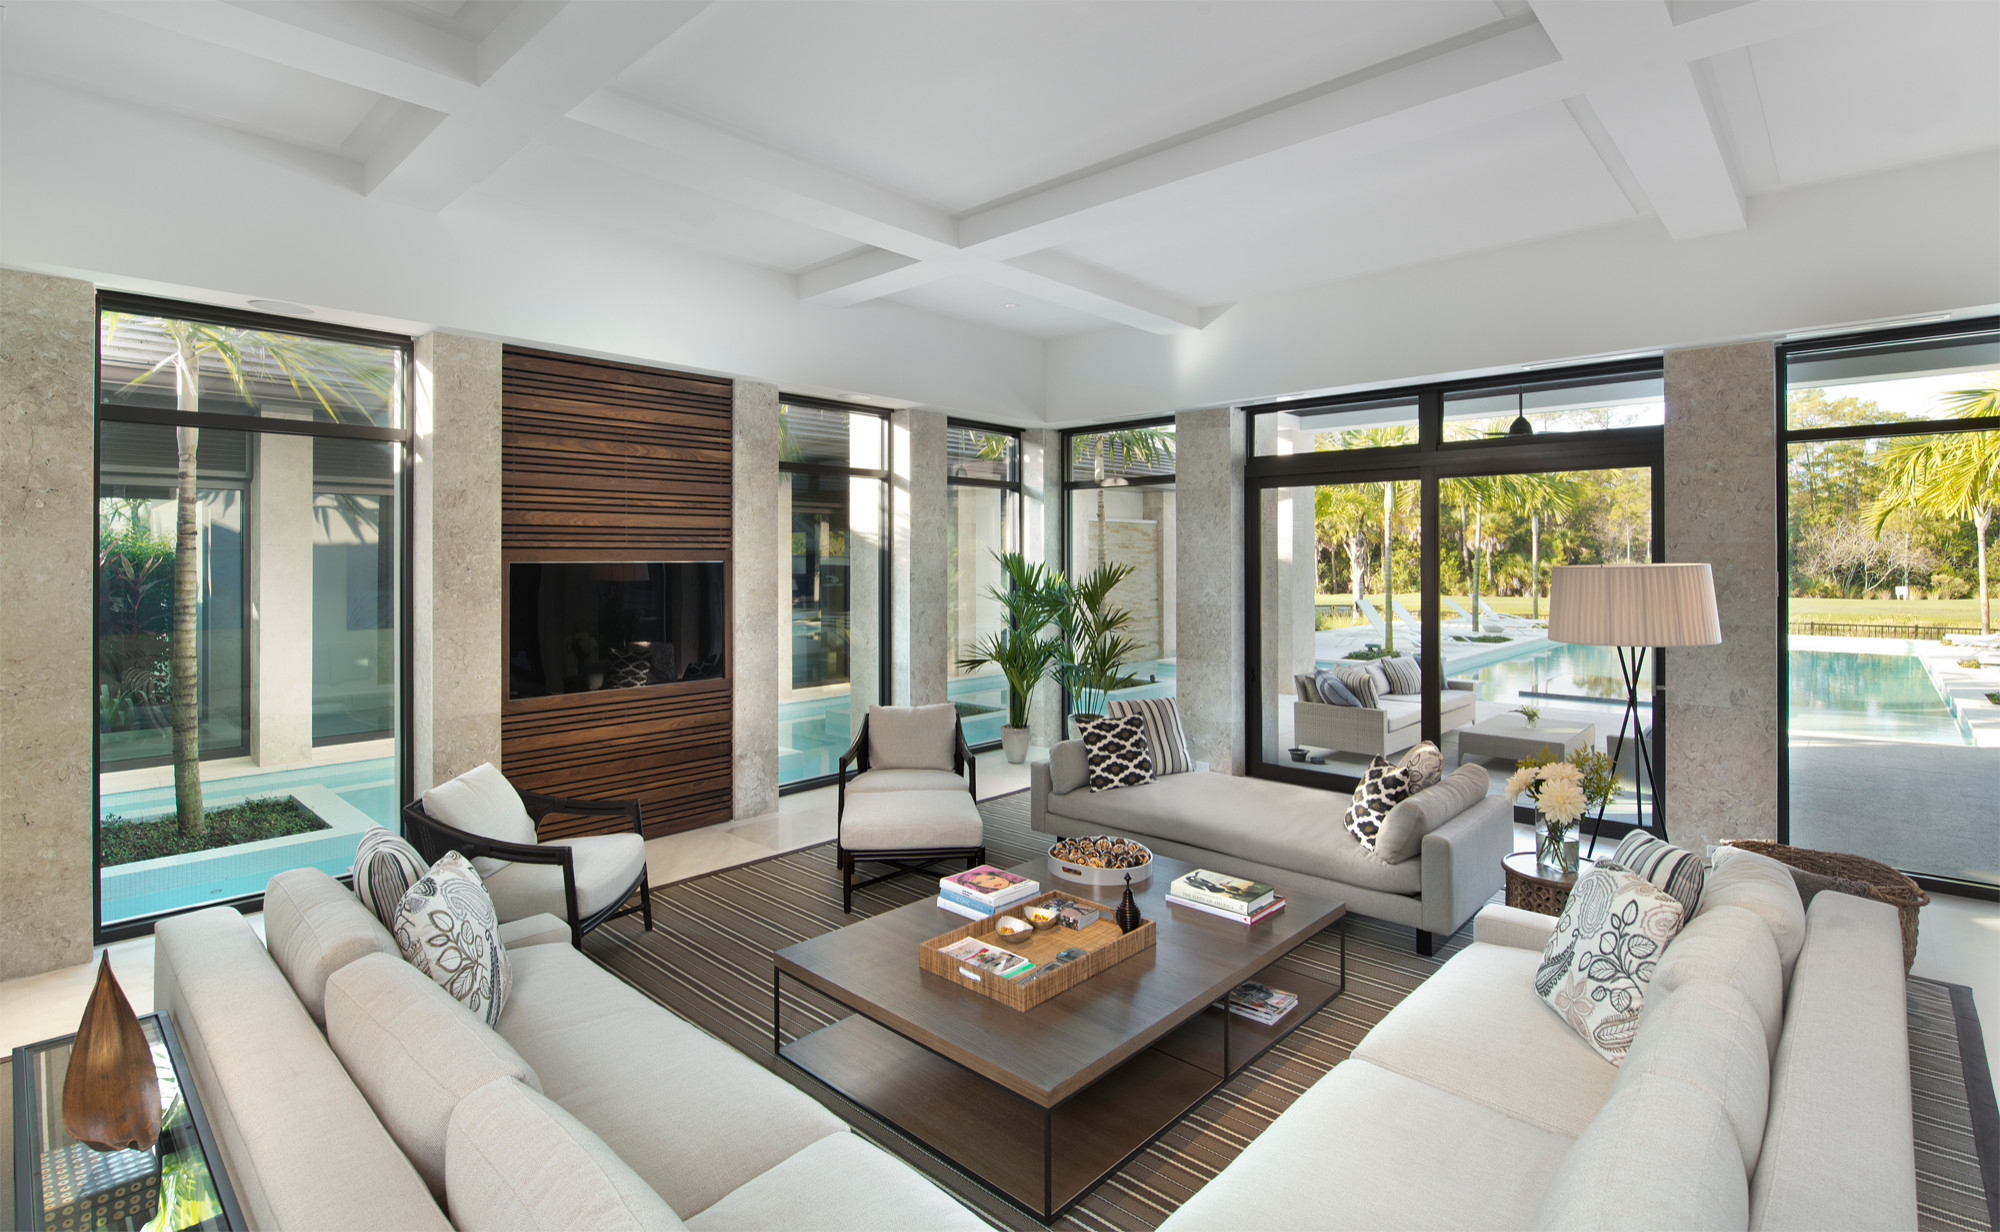 75 Beautiful White Marble Floor Living Room Pictures Ideas February 2021 Houzz